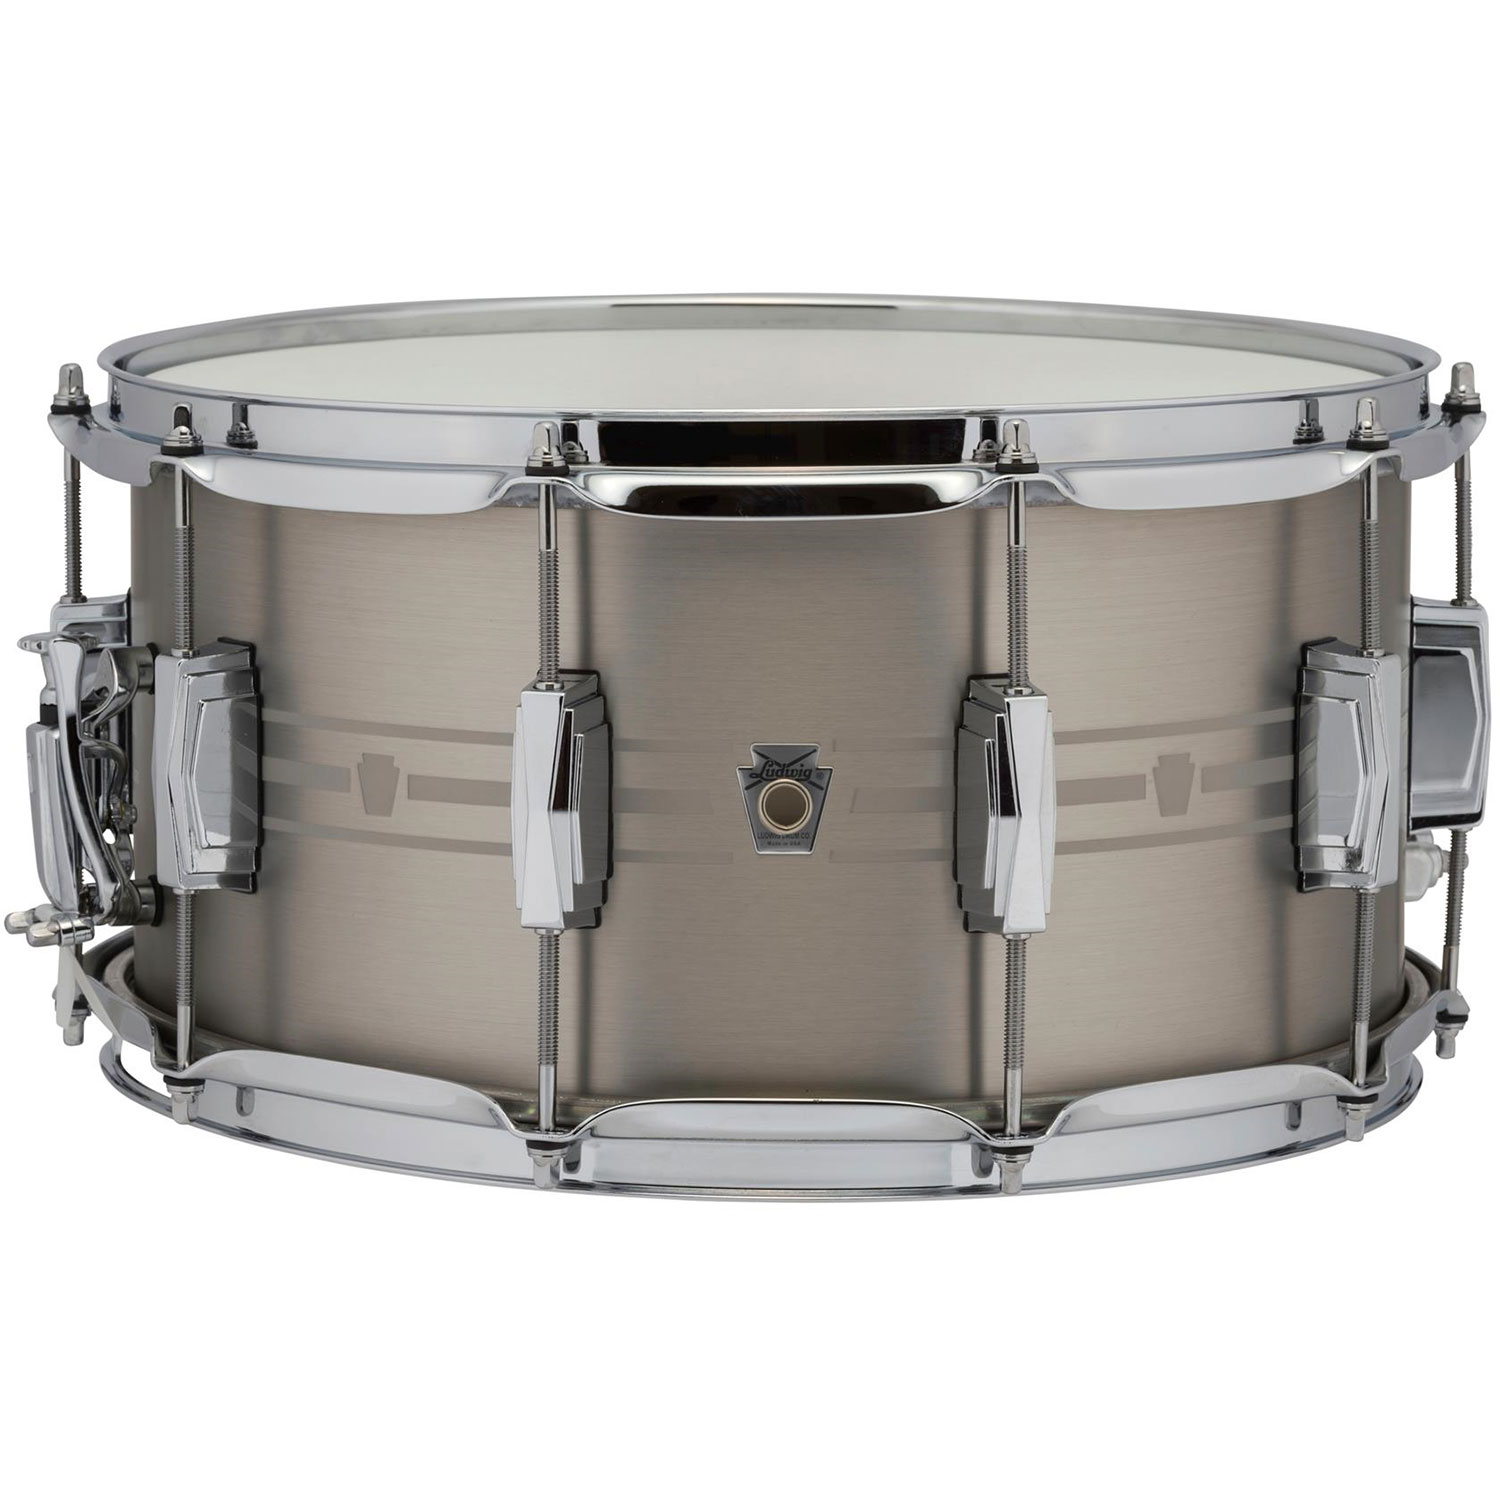 "Ludwig 7"" x 14"" Heirloom Stainless Steel Snare Drum"